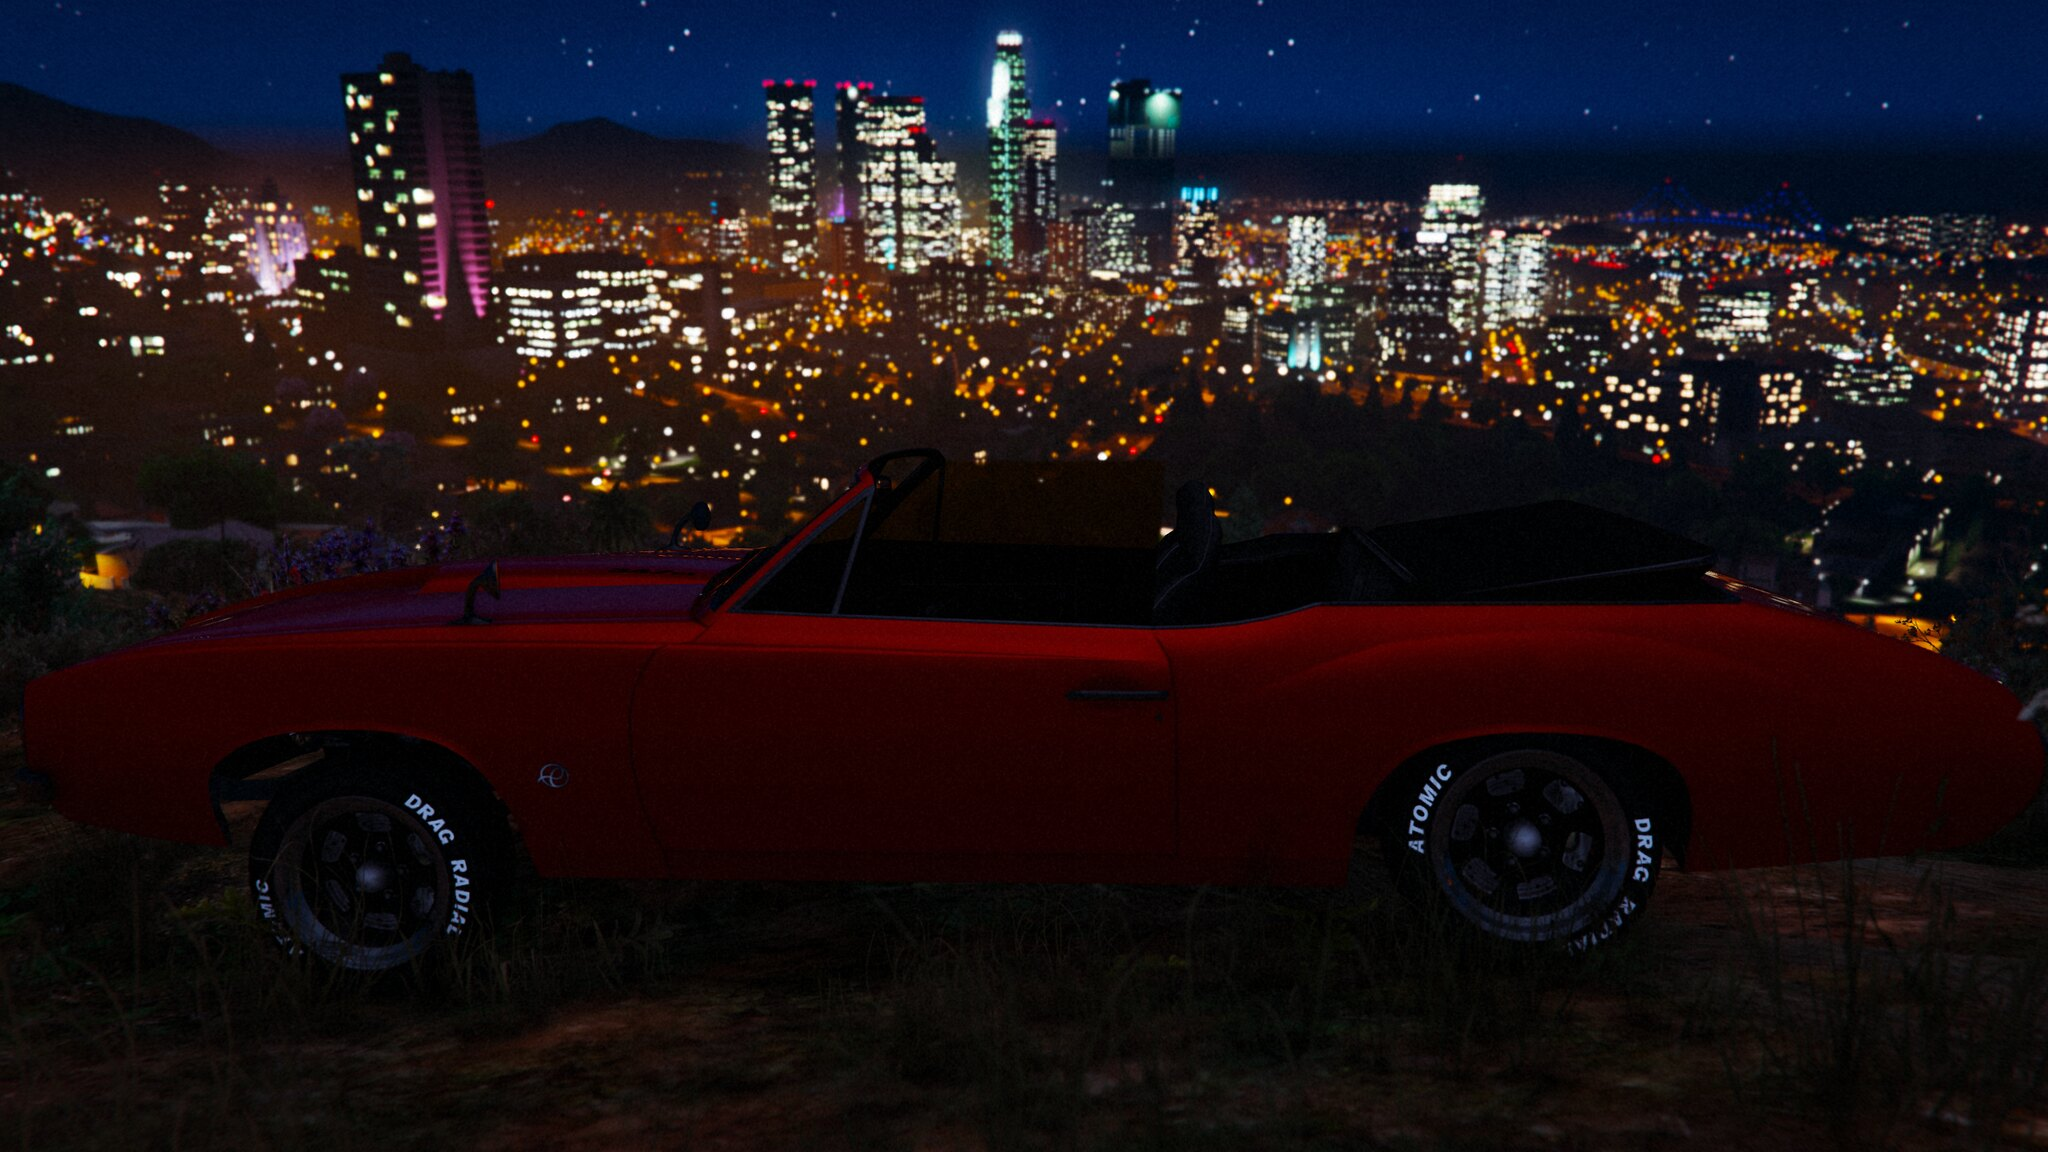 GTA V Screenshots (Official)   - Page 2 20310958490_45d488f9cd_k